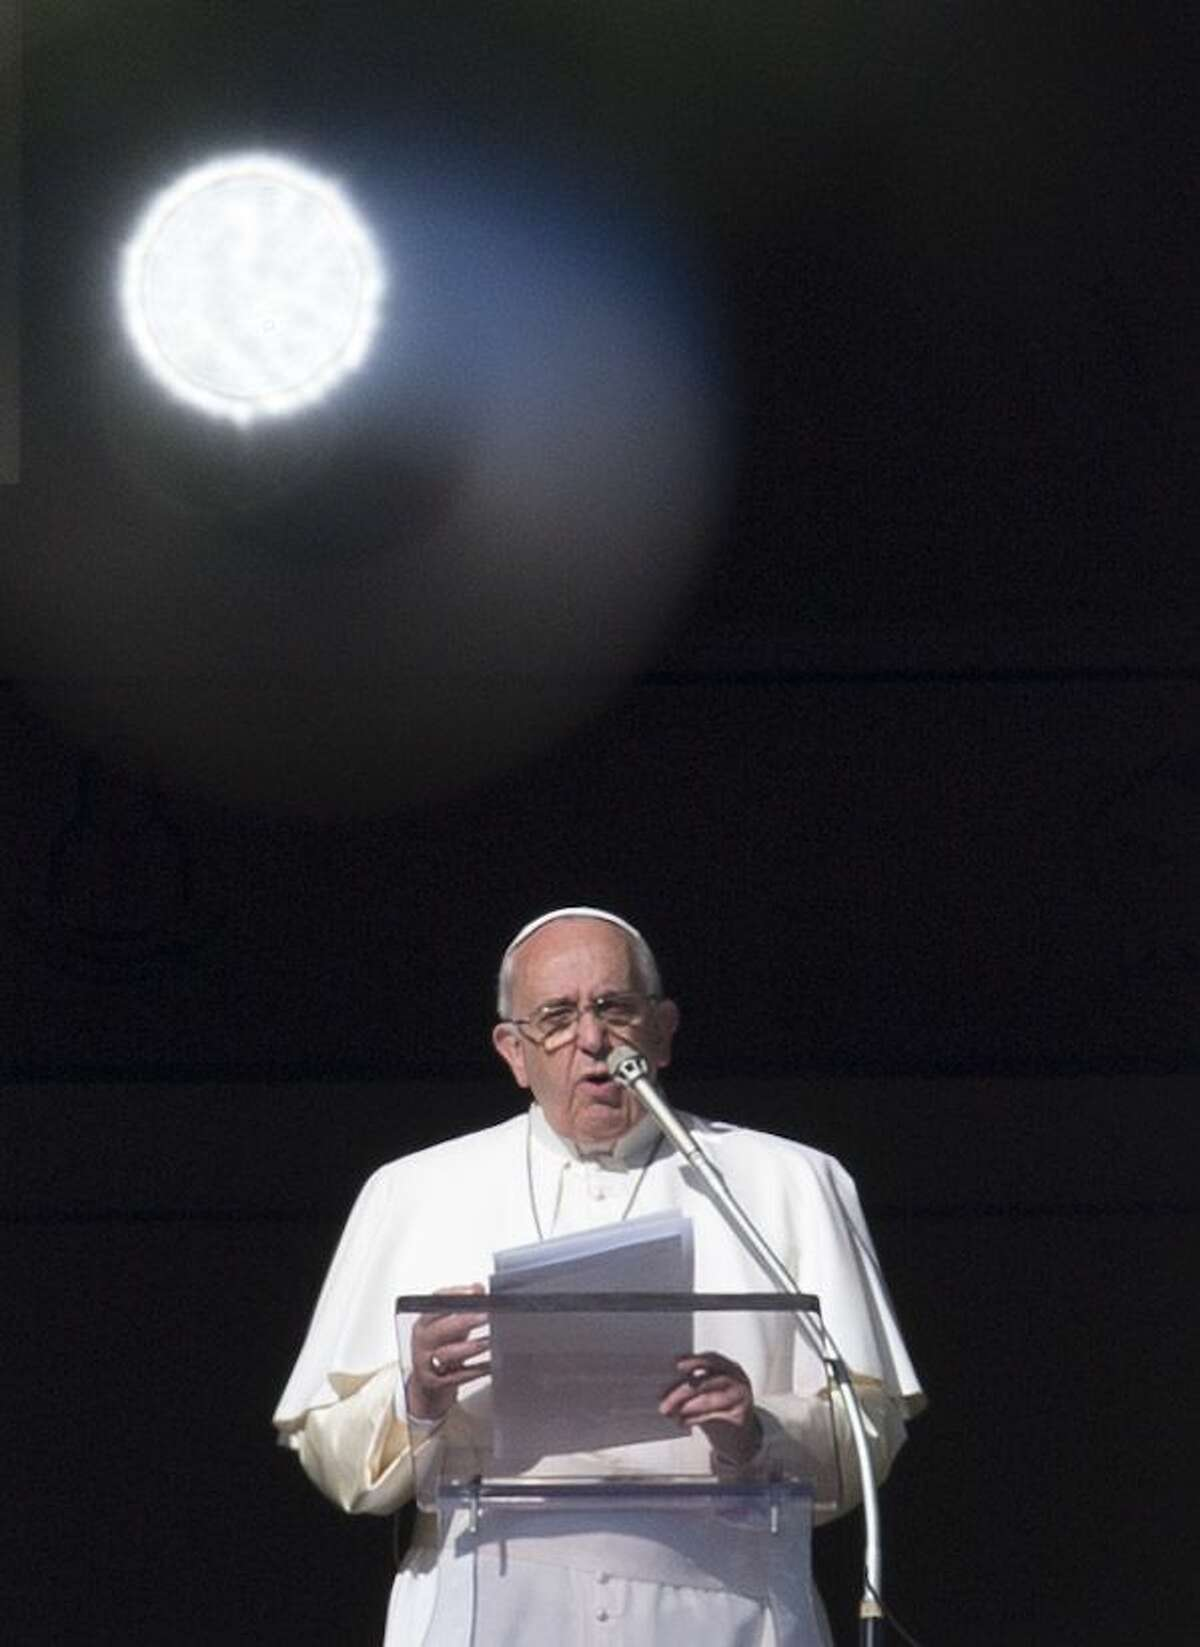 Pope Francis delivers his speech during the Angelus noon prayer he celebrated from the window of his studio overlooking St. Peter's Square at the Vatican, Sunday, Dec. 21, 2014. On top, left, is a Christmas tree's decoration reflecting sun light. (AP Photo/Alessandra Tarantino)